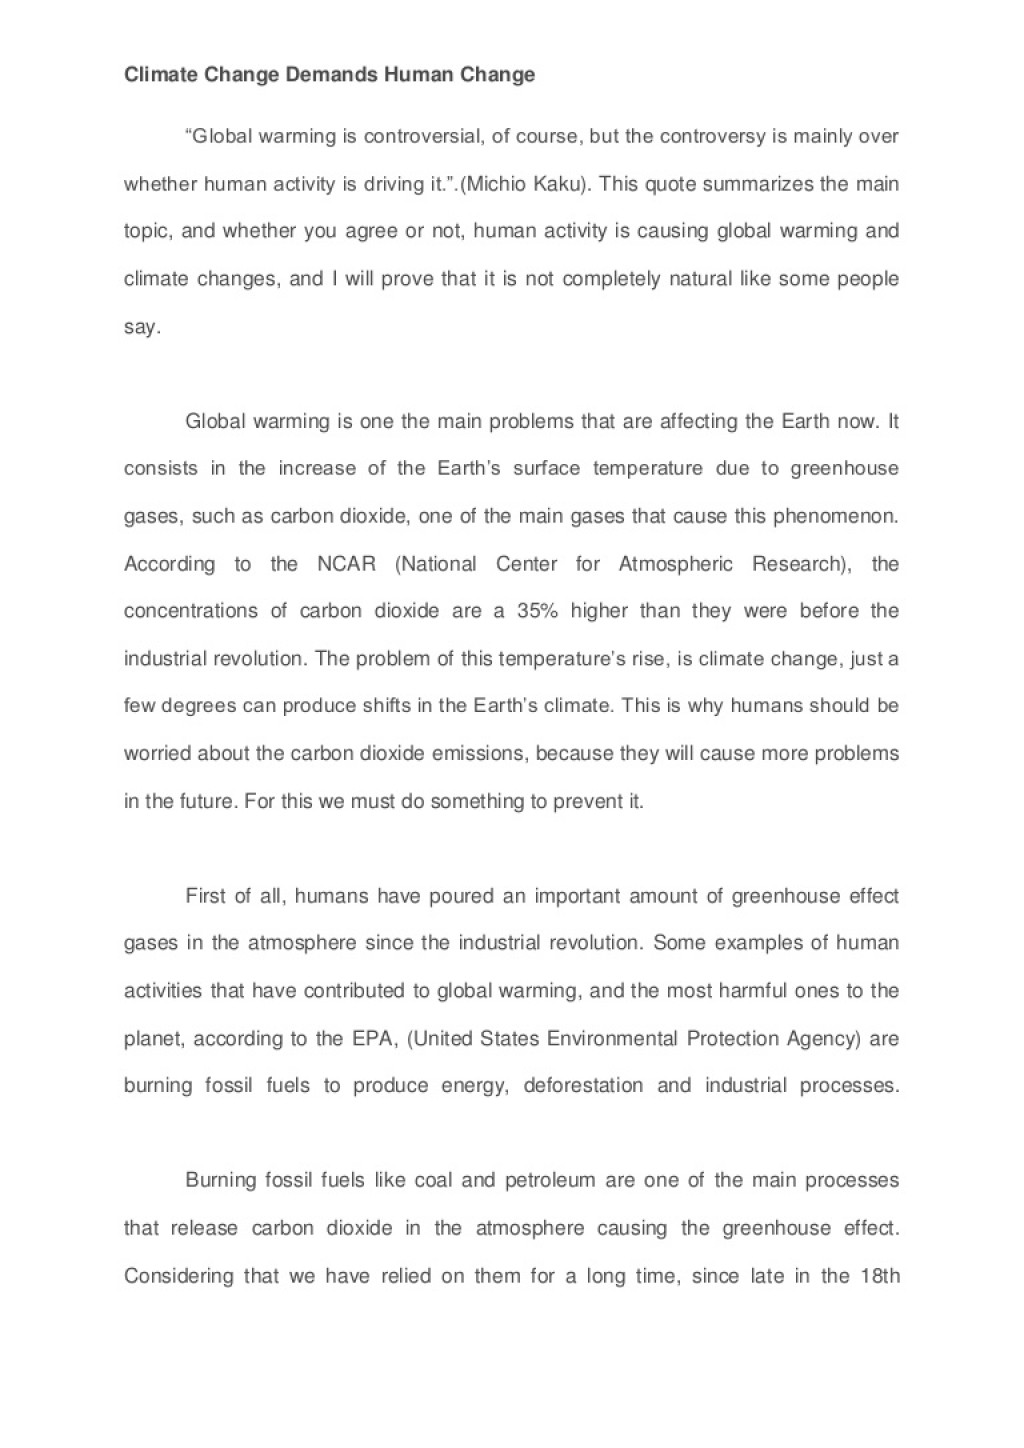 009 Change Essay Example Is Global Climate Man Made Study Percent Agreement Oyarce Esuessayclimatechangedemandshumanchange Lva1 App6892 Thumbn Persuasive Awesome Topics The World Contest Titles Large